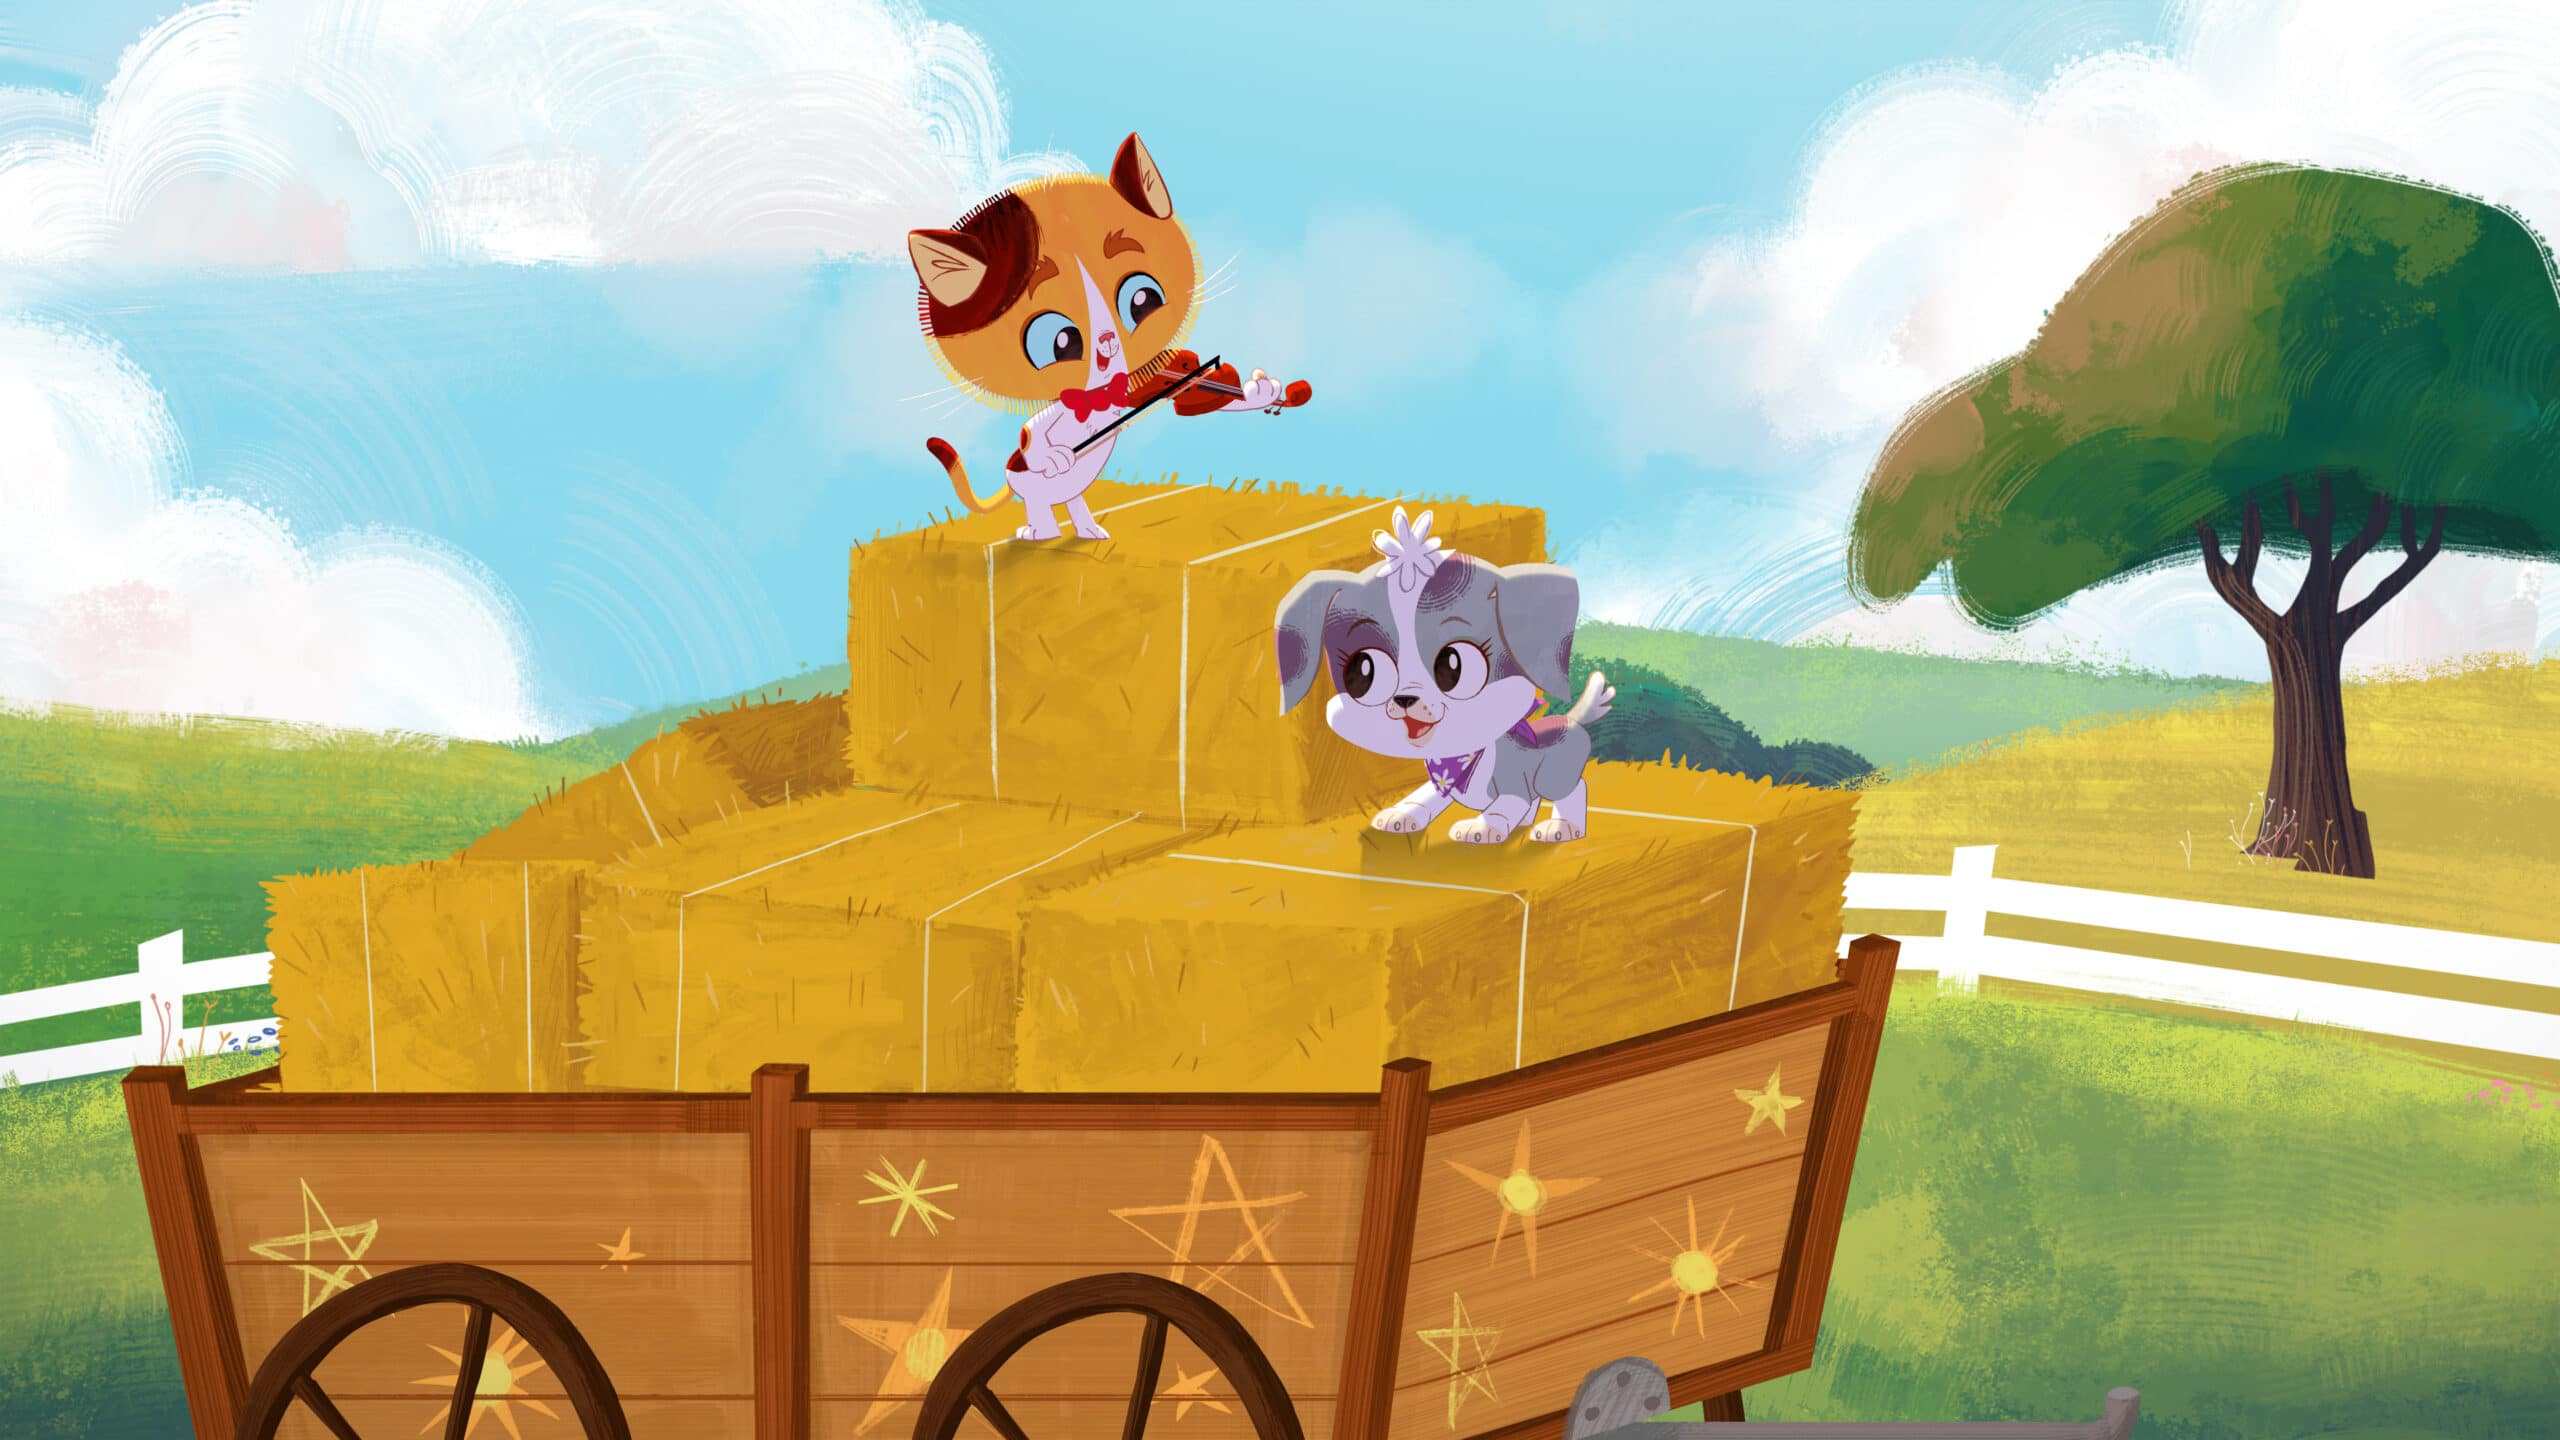 RHyme Time Town Cole, Daisy. Discover more about your favorite characters from the colorful world of Rhyme Time Town. Join Daisy and Cole in 10 all-new singing adventures through the Rhyme Time Town Sing Along, coming to Netflix on December 22nd!